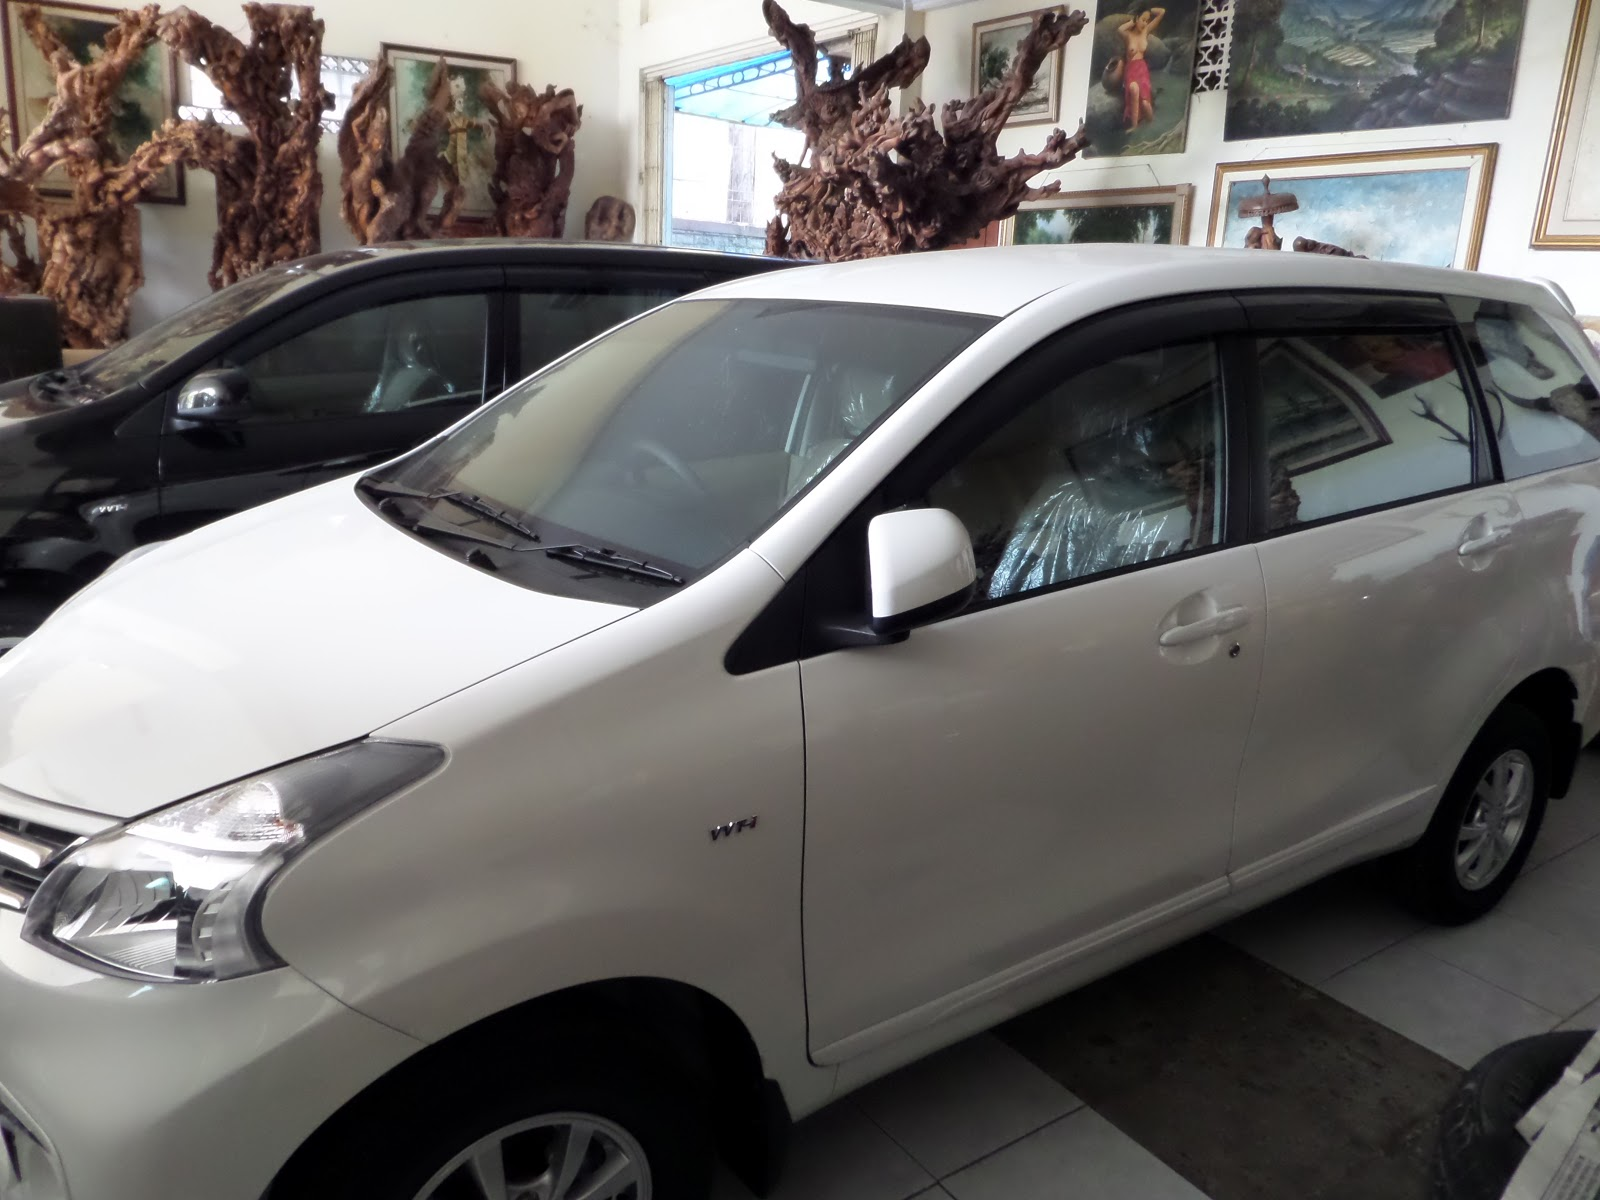 Grand New Avanza Warna Grey Metallic Harga Yaris Trd Sportivo 2017 All Toyota 2013 Type G Mo88ilbekas